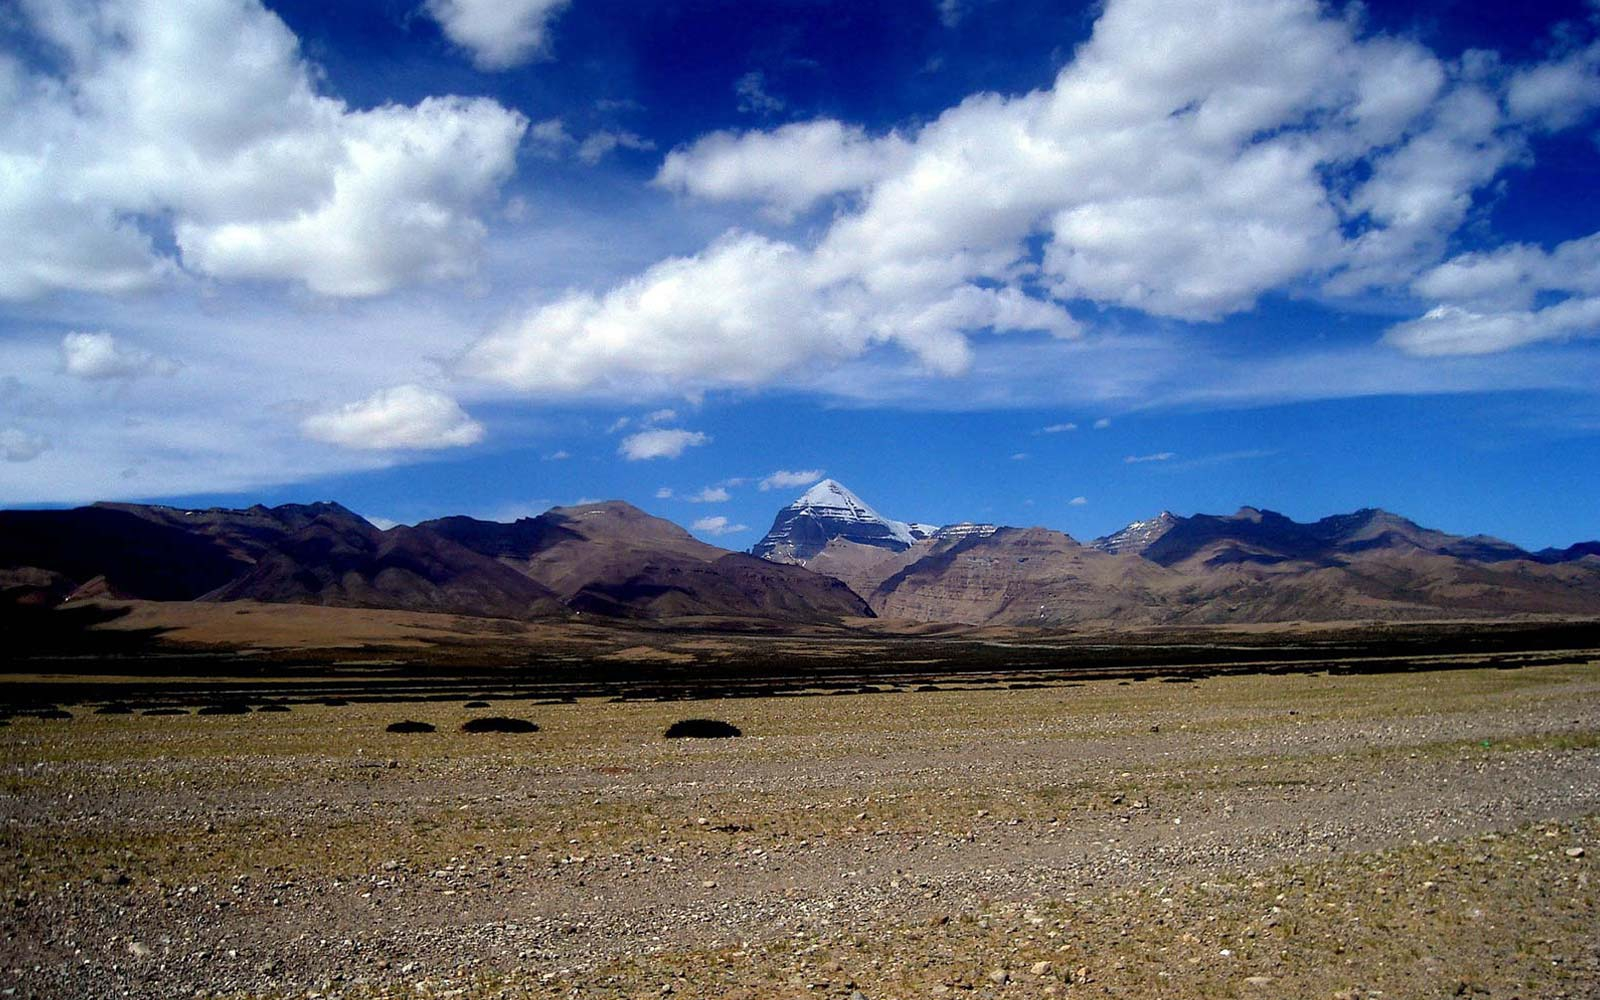 Kailash Mansarovar, Everest & Potala